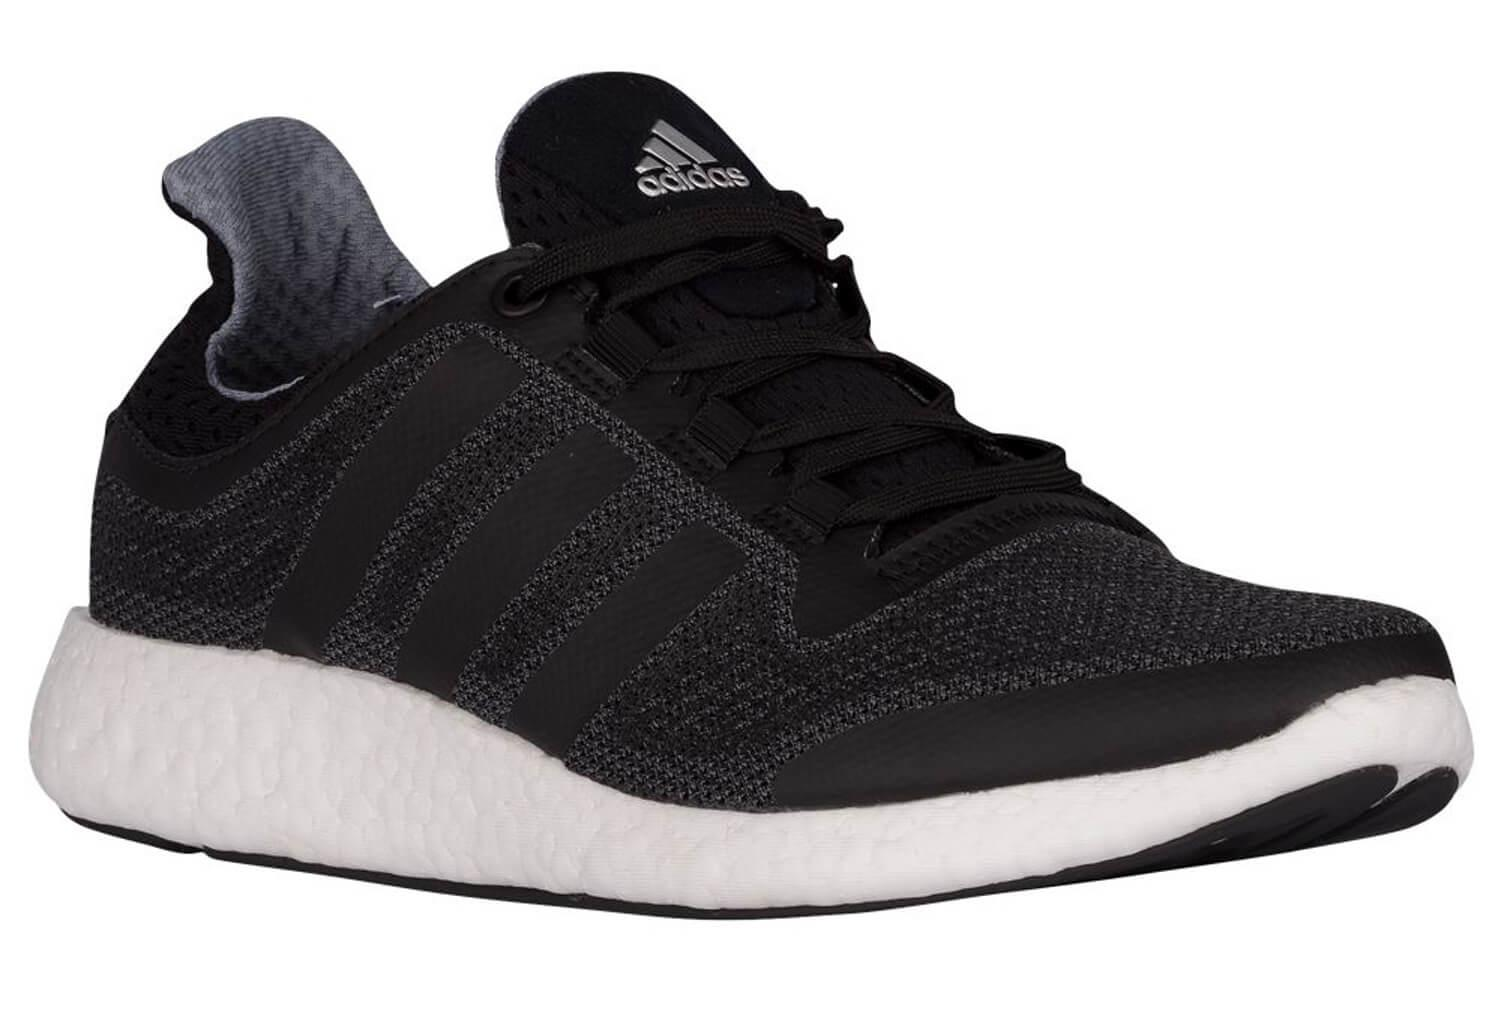 Adidas Pure Boost 2.0 Fully Reviewed